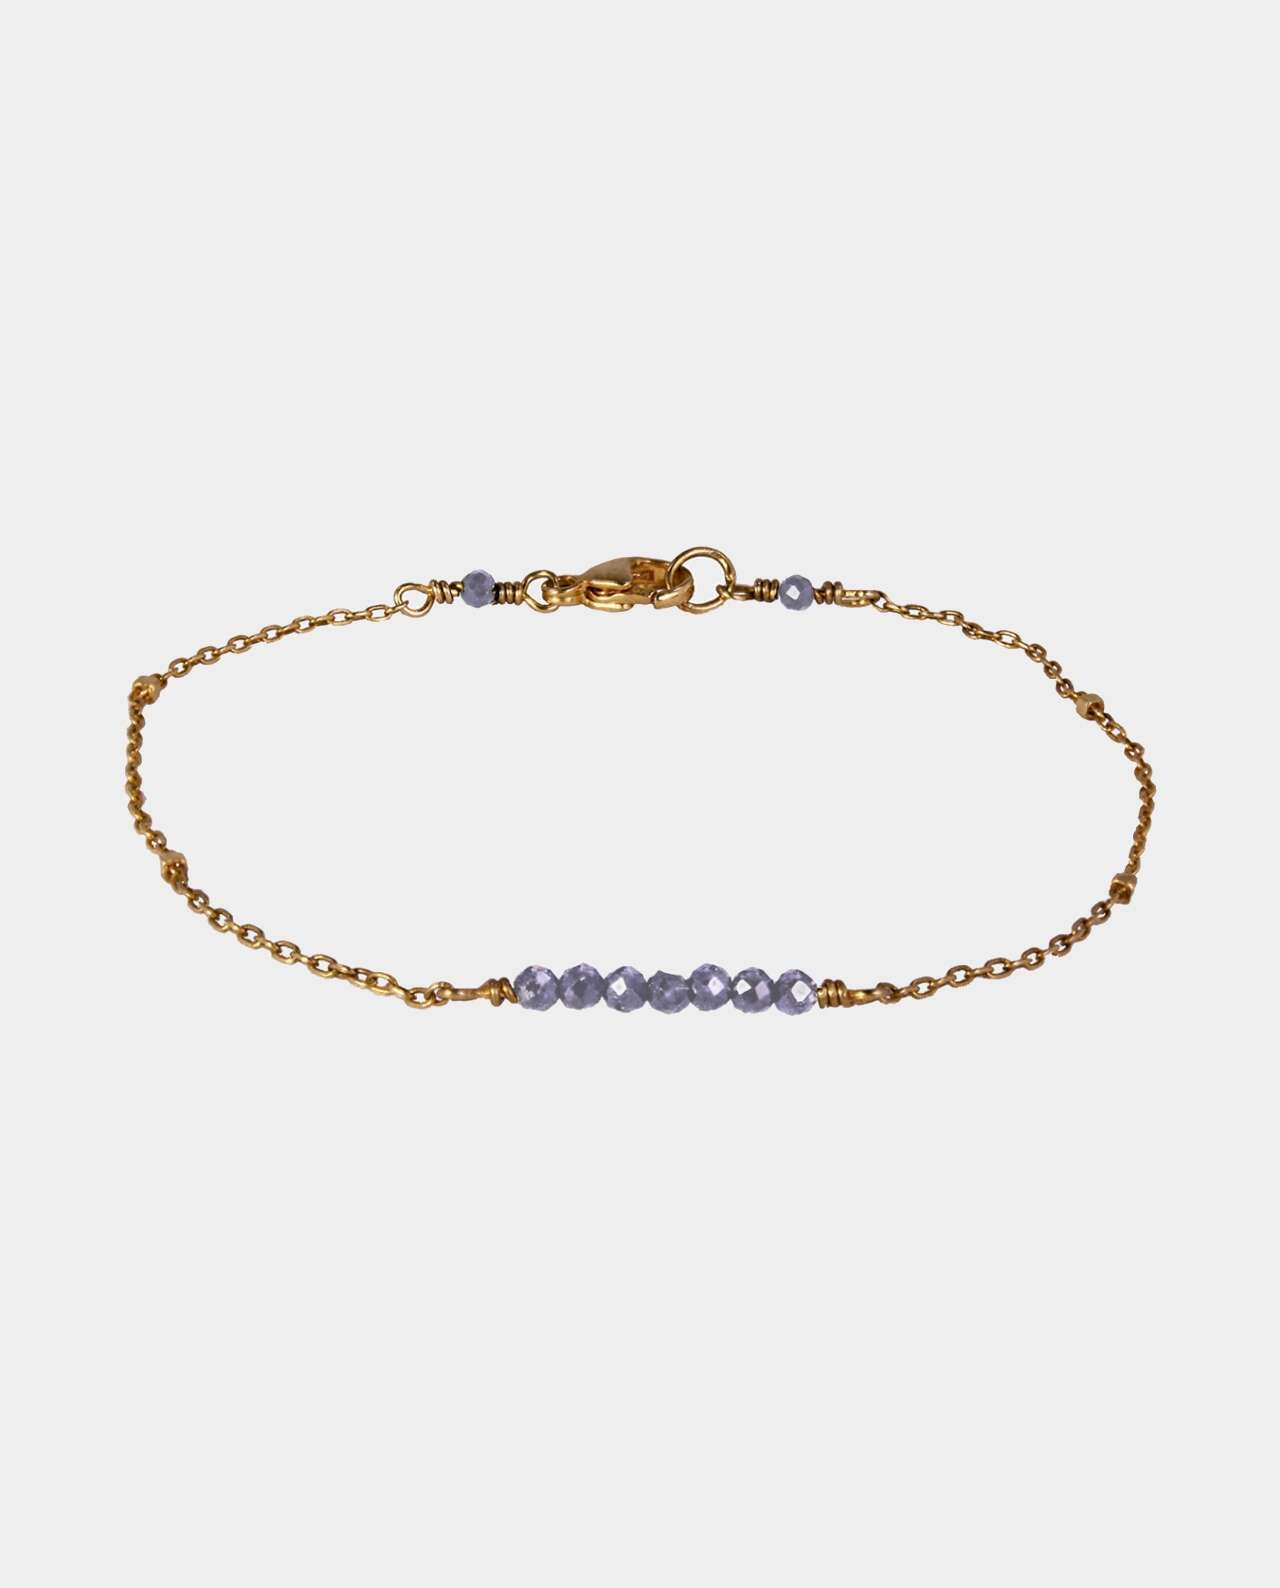 Handmade bracelet with grey-blue iolite and sterling silver plated with 18 carat gold without nickel